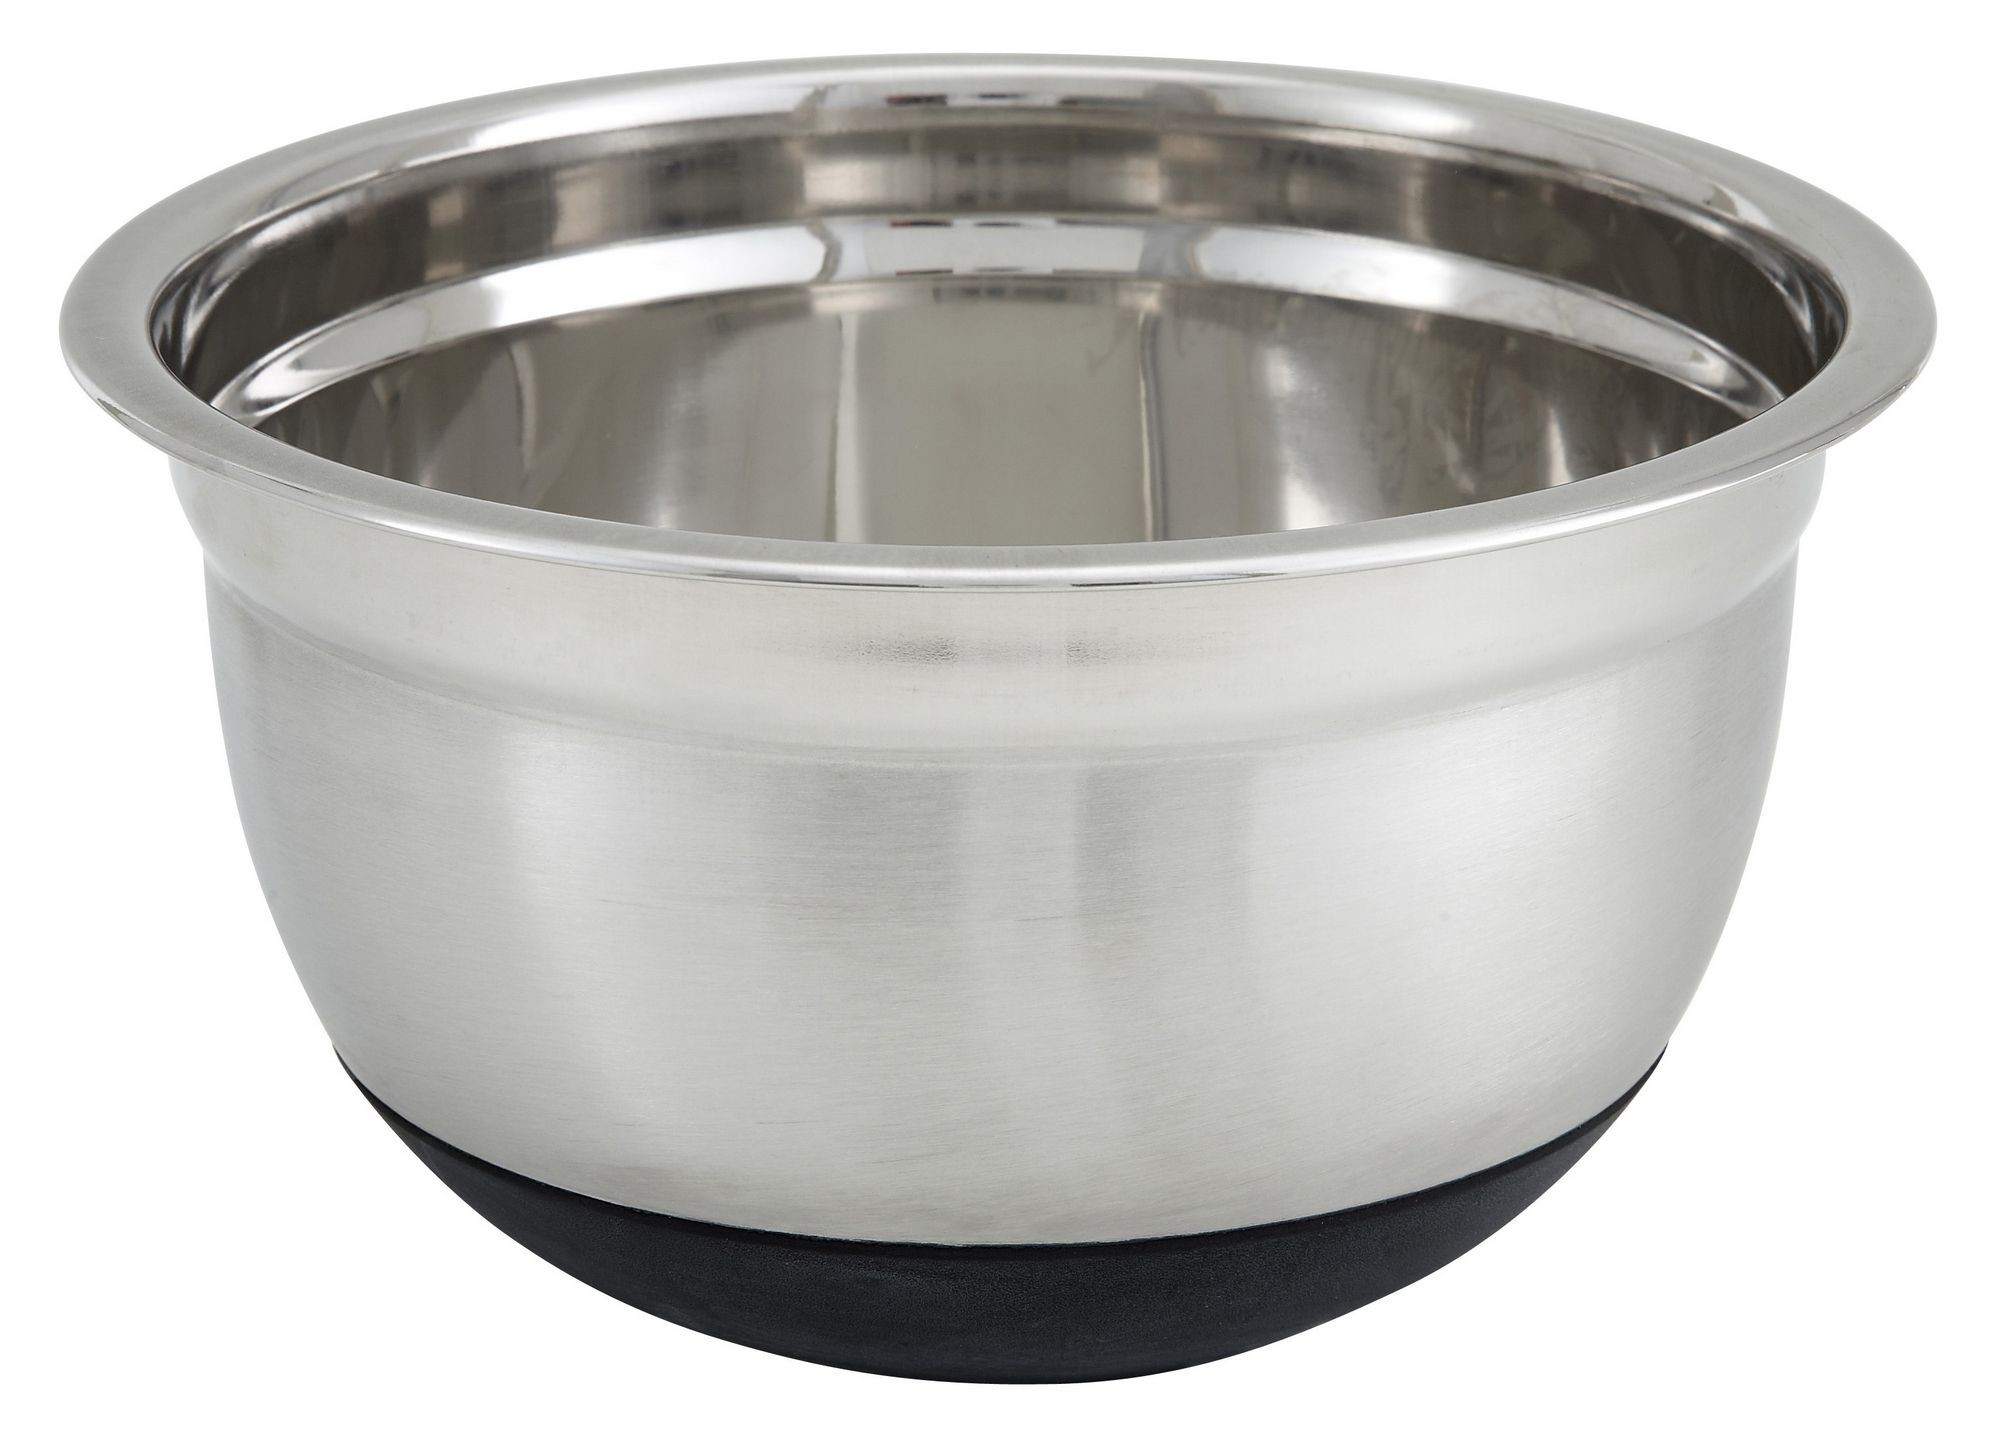 Winco MXRU-500 German Mixing Bowl 5 Qt. with Silicone Base